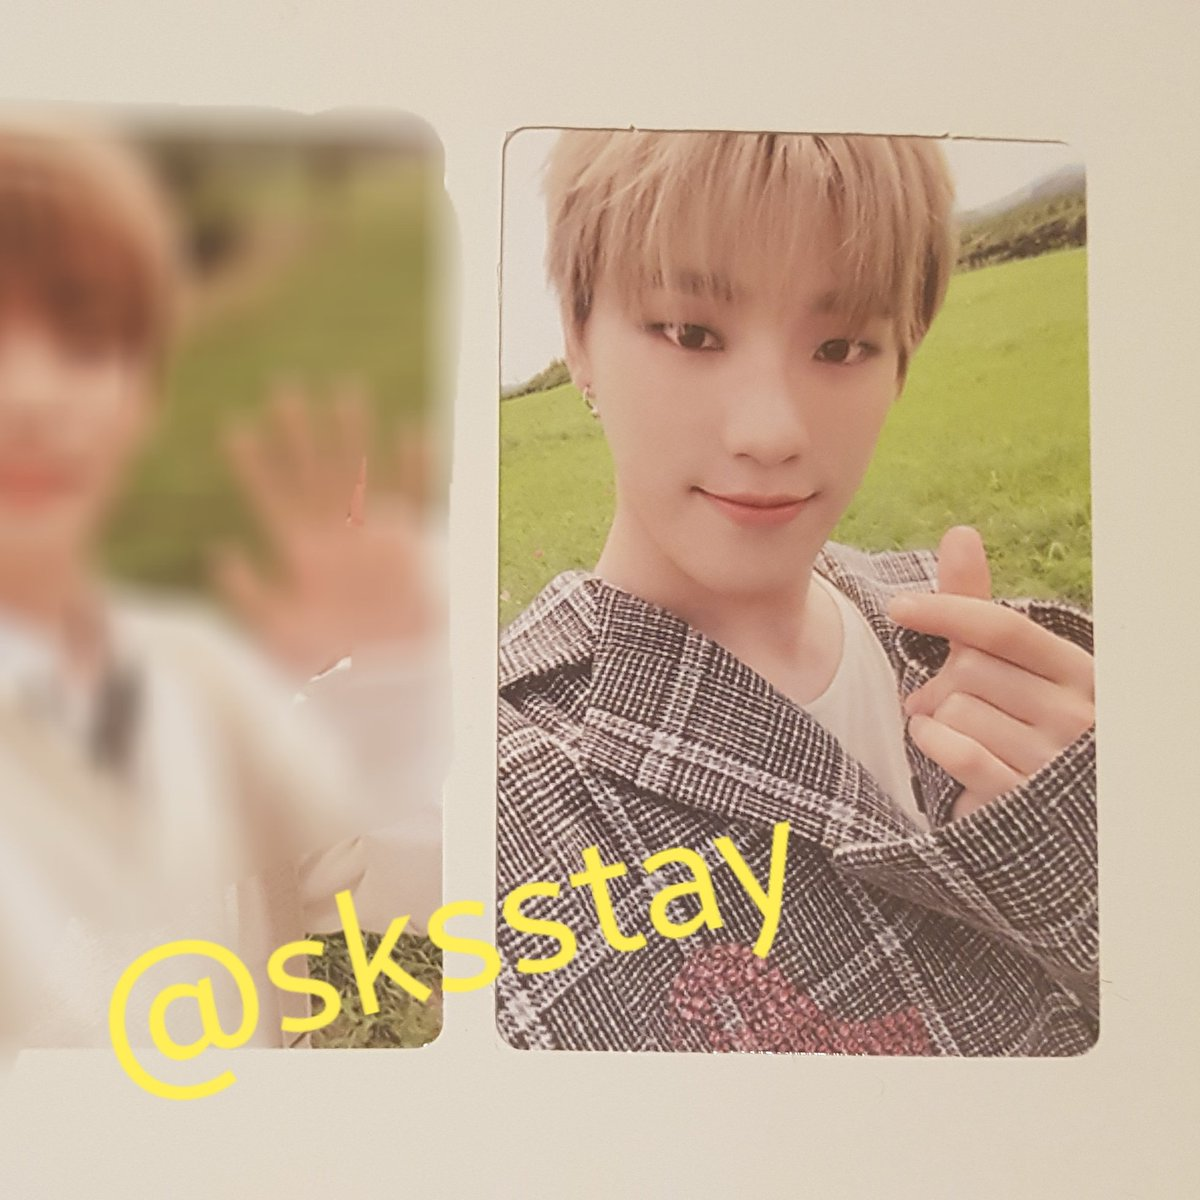 [#WTT] Want to trade Please help RT!  have: DINO pc hope version (in 1st two pics) want: 3rd pic (jeonghan & the8 priority)  Loc: The Netherlands WW: only europe  DM me if you're interested.  #Seventeen #SEVENTEEN_An_Ode